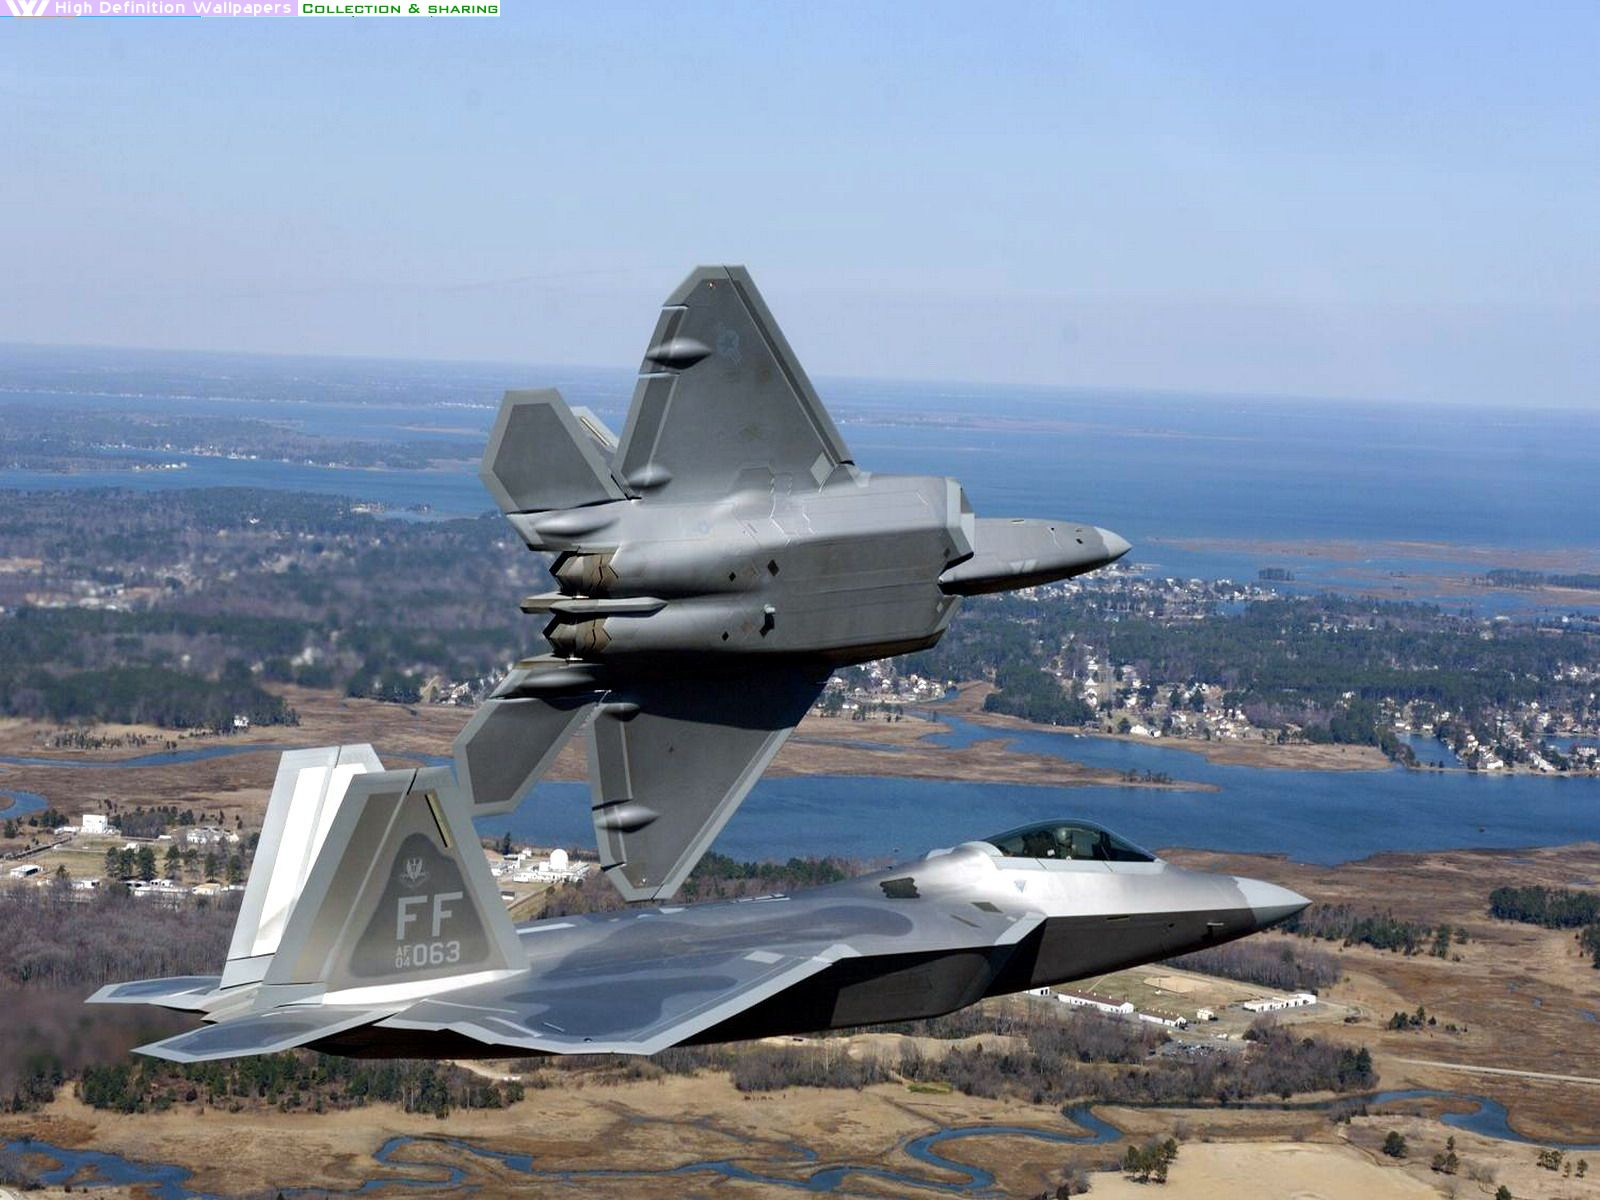 Air Force wallpapermilitary wallpaper 10 High Definition Wallpapers 1600x1200